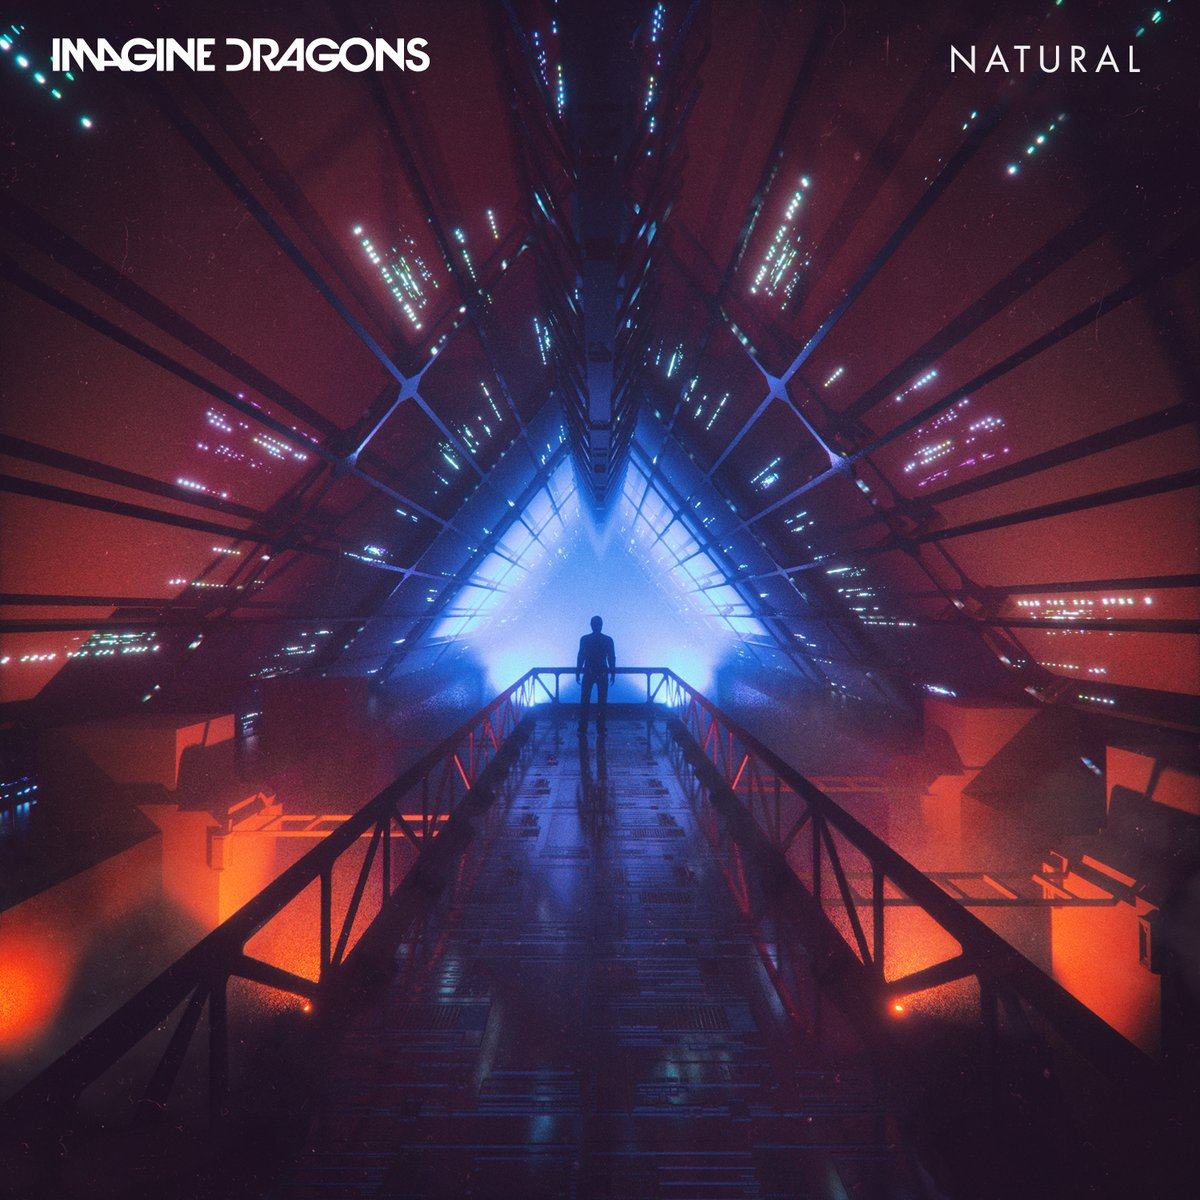 Natural De Imagine Dragons Revista Q